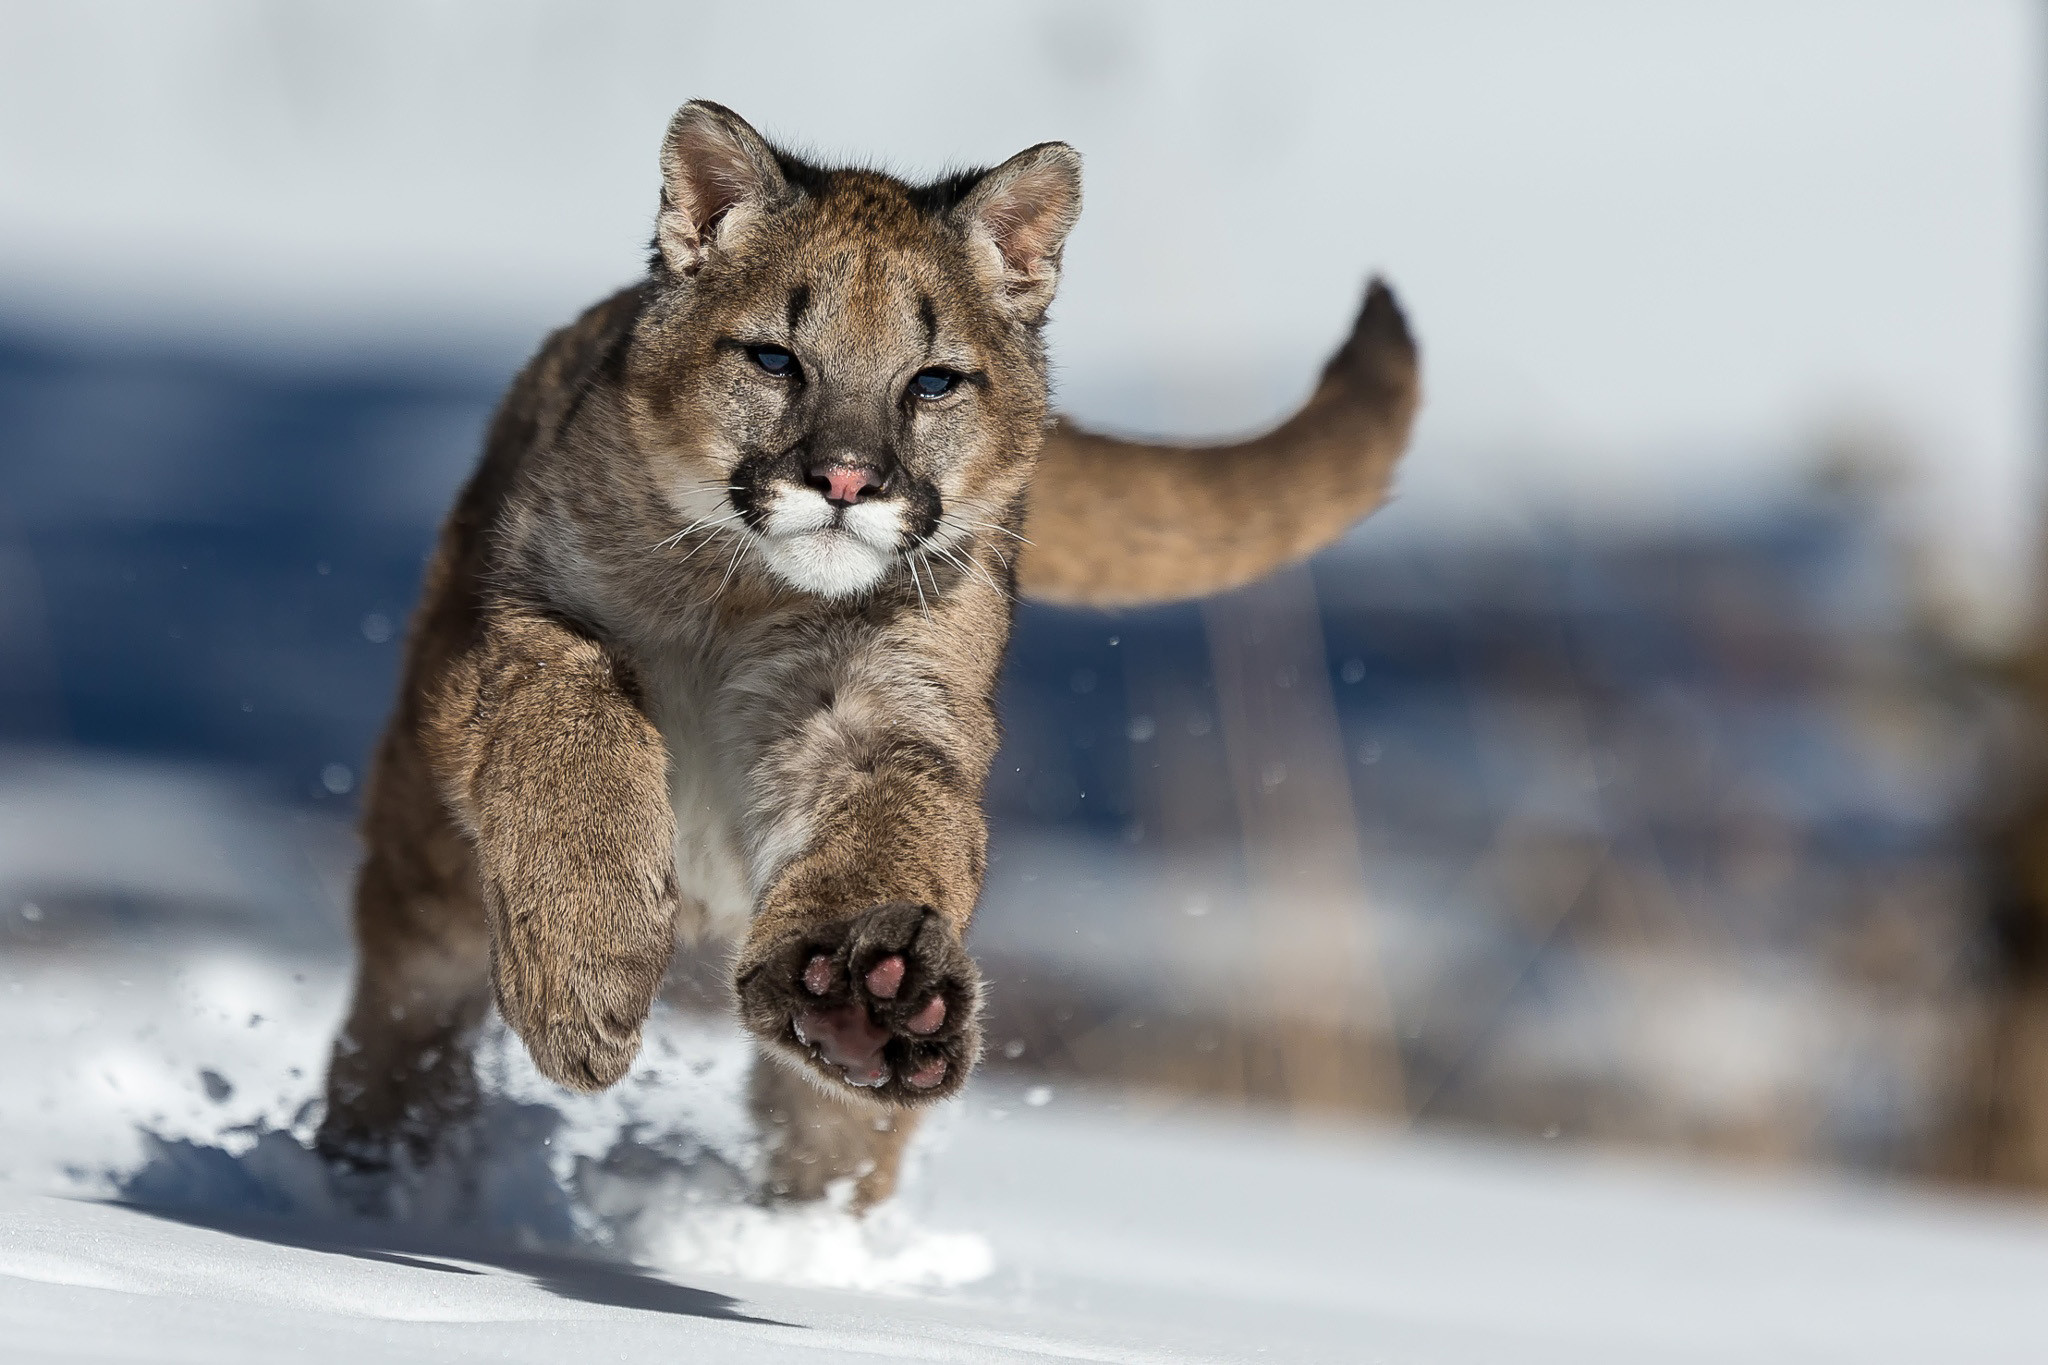 Funny image of skunk beside reeds on winter · free download Tiger Cat  Running In White Winter Snow Macro HD wallpaper